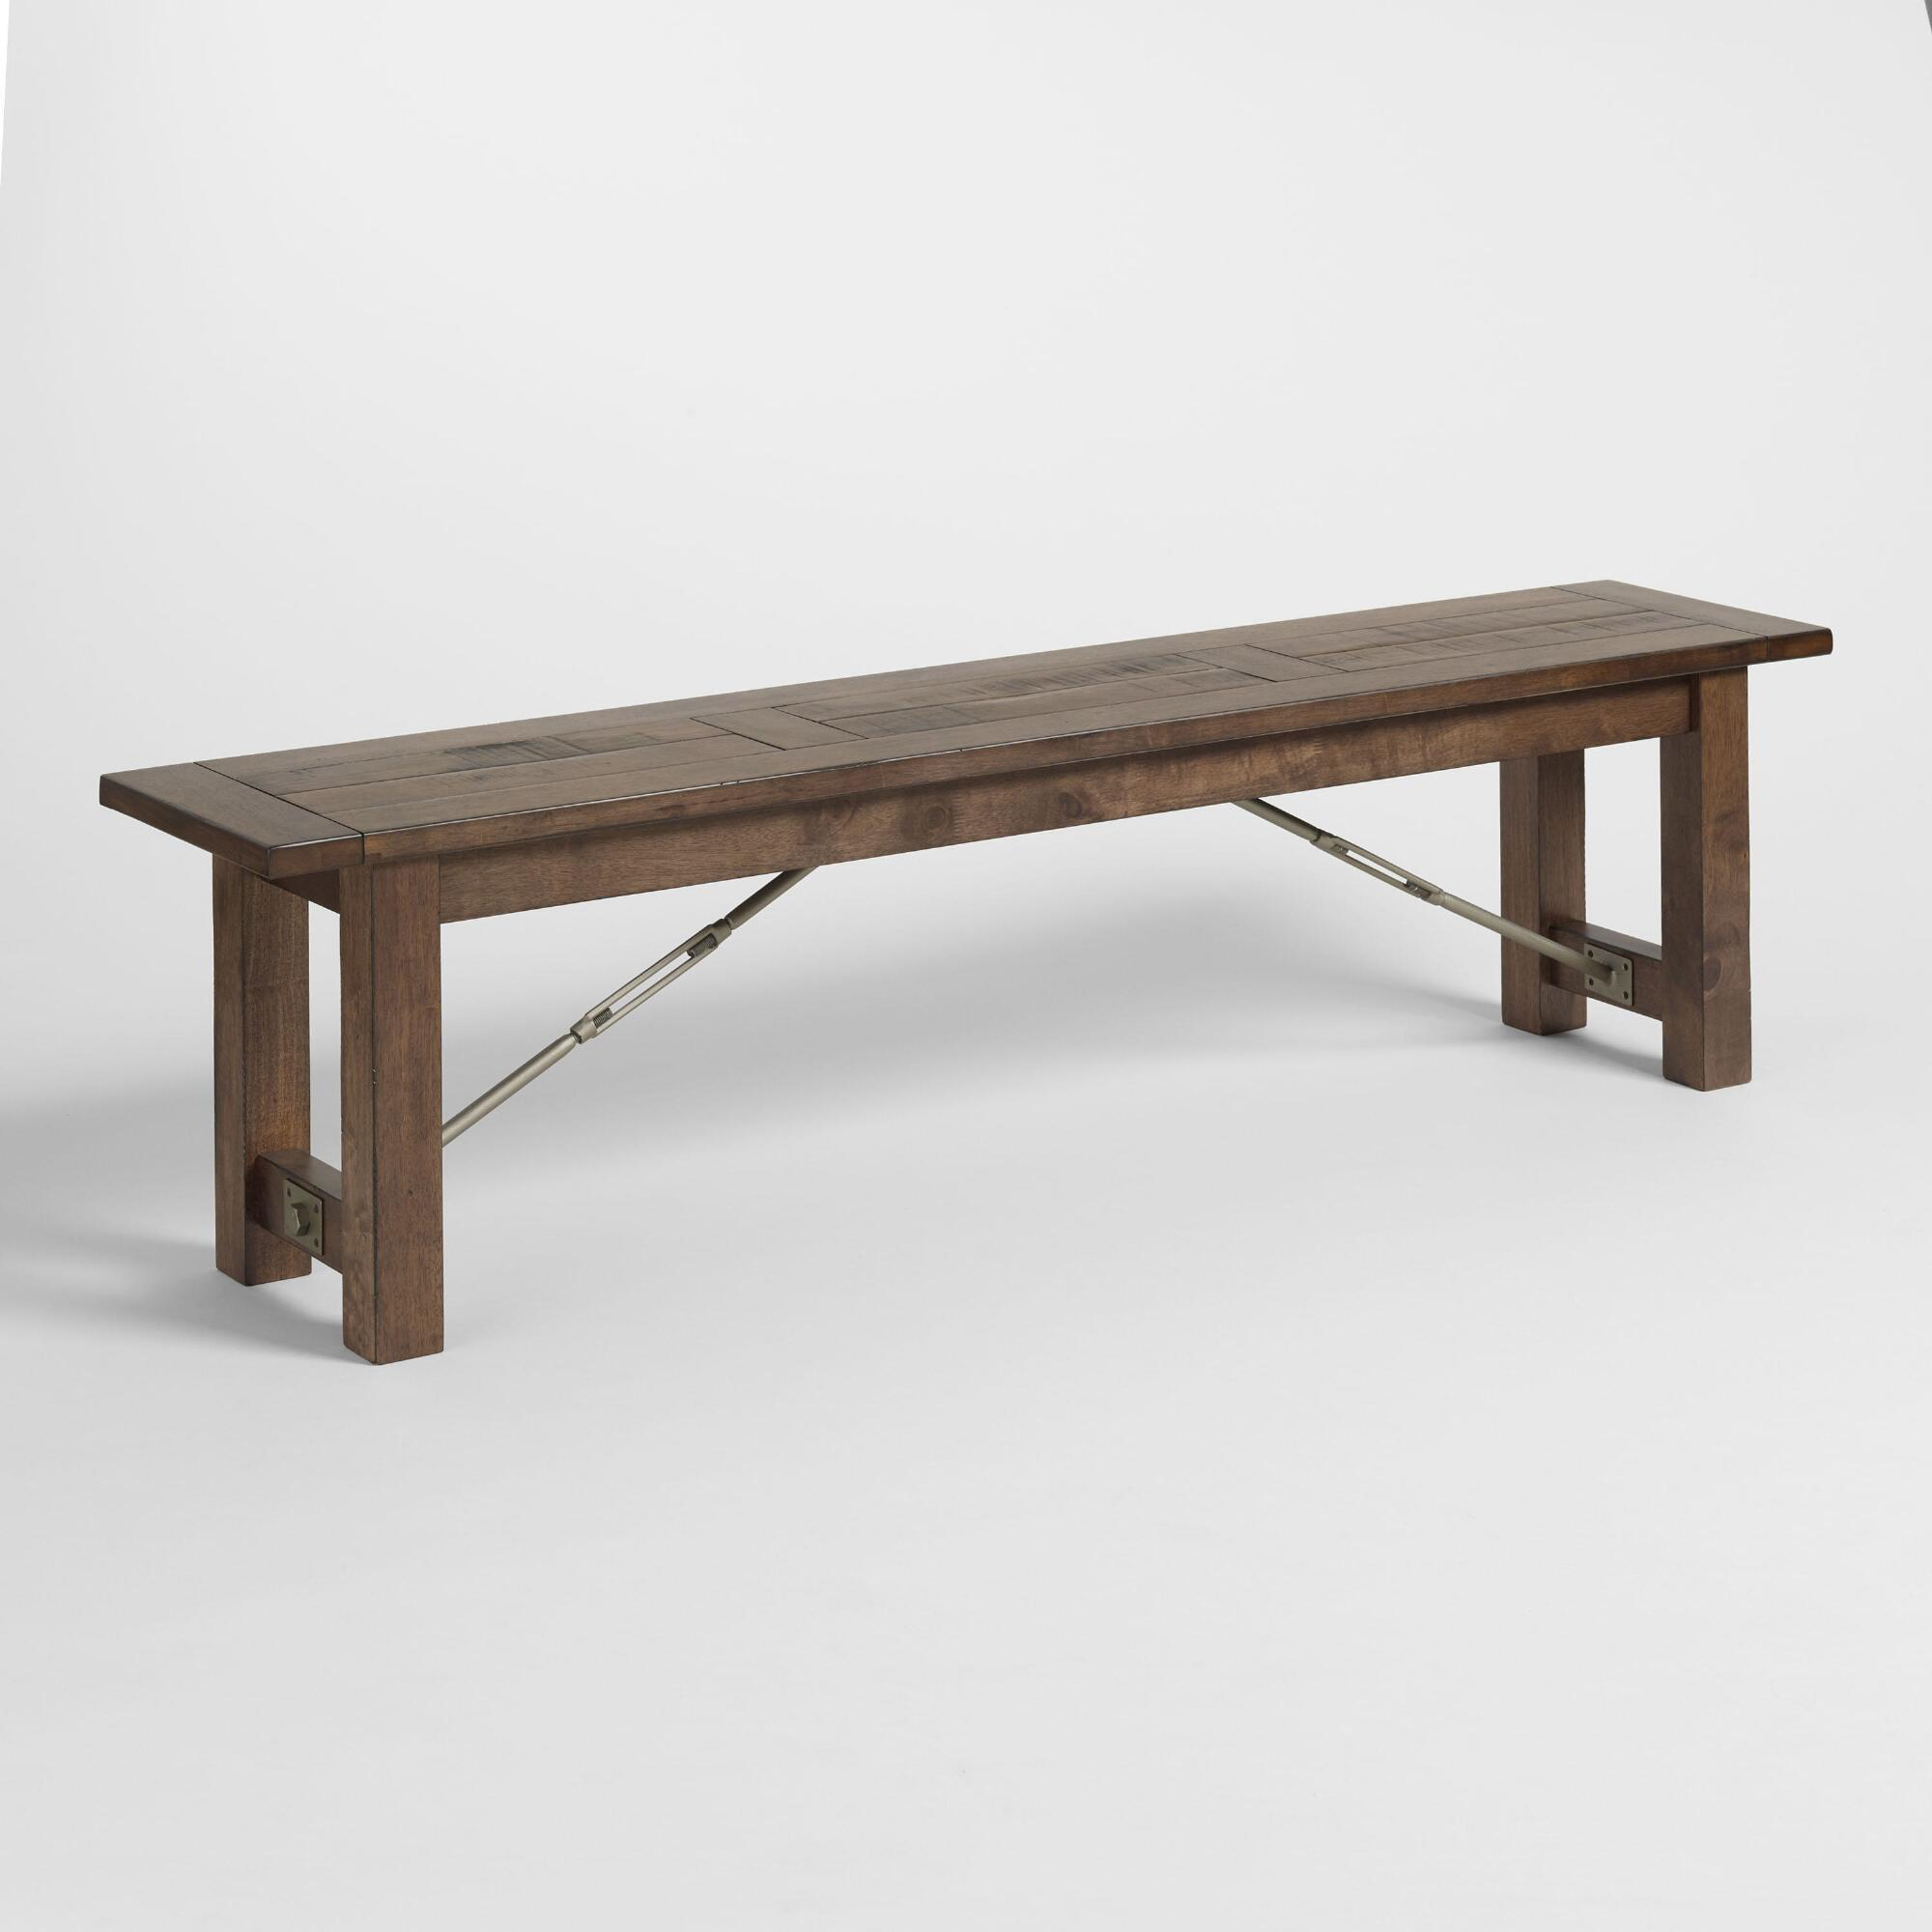 Bedroom bench with arms - Wood Garner Dining Bench